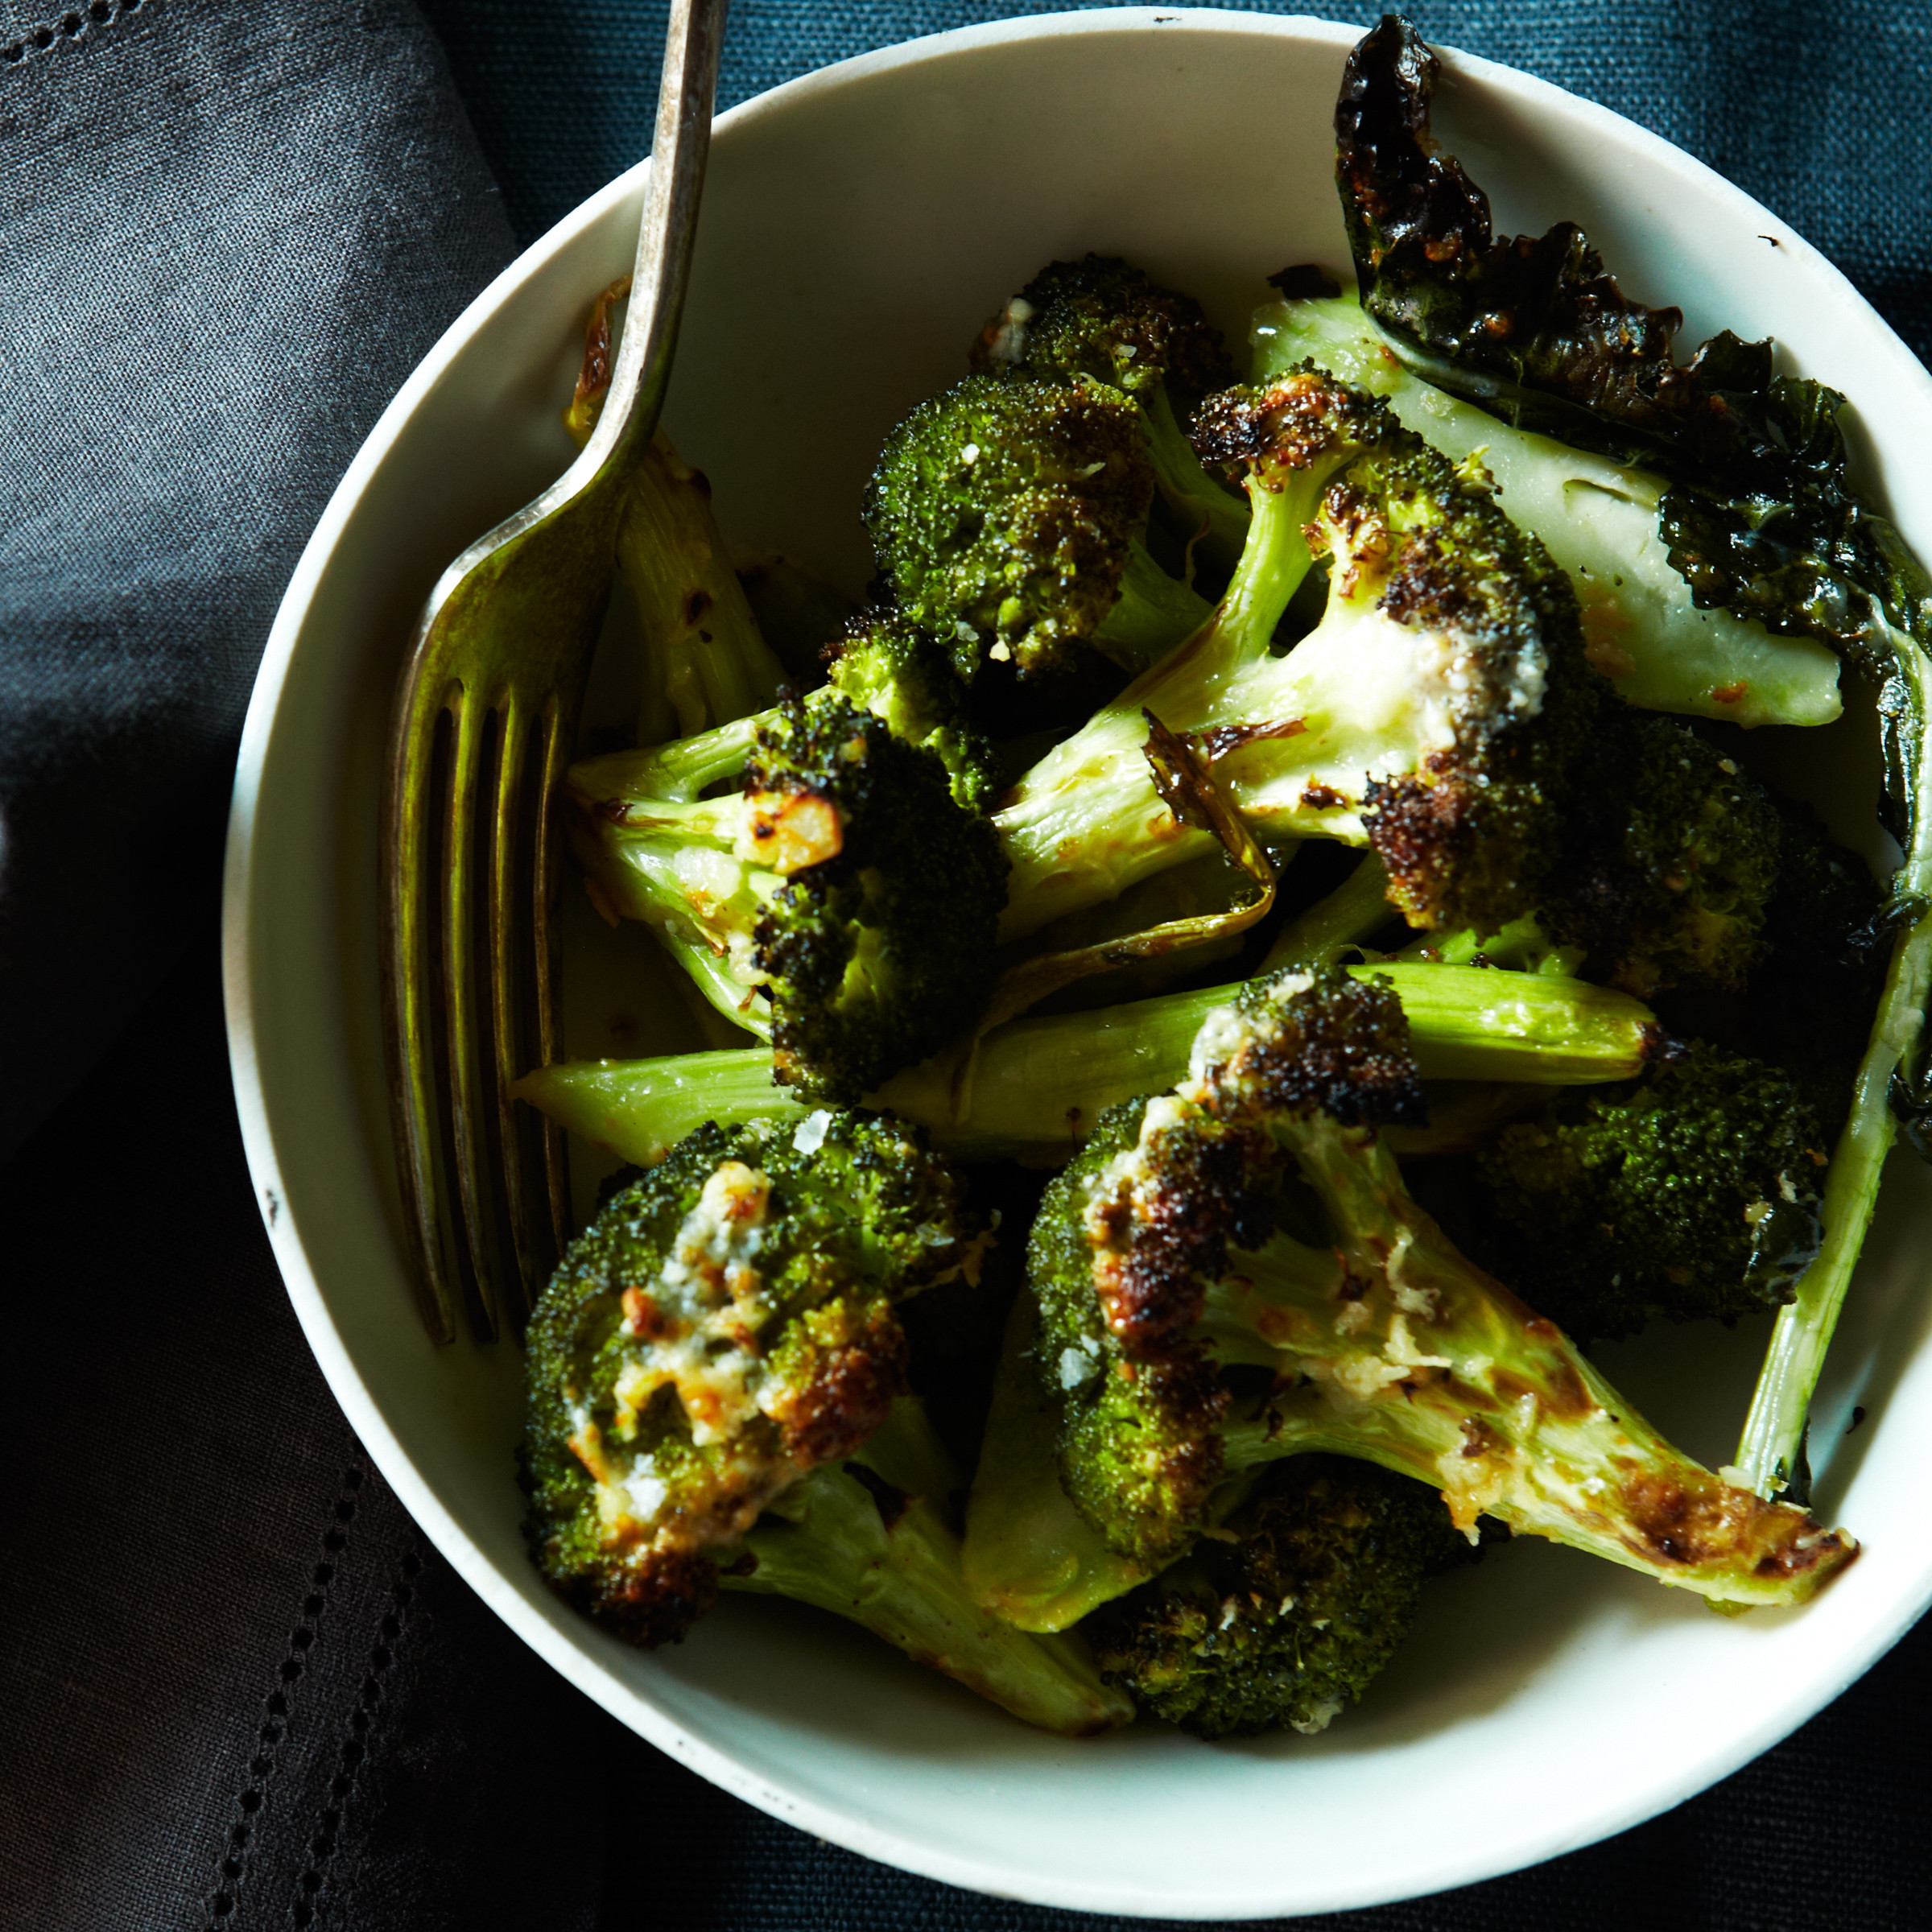 Best Christmas Vegetable Side Dishes  Roasted Garlic Parmigiano Broccoli Recipe Grace Parisi